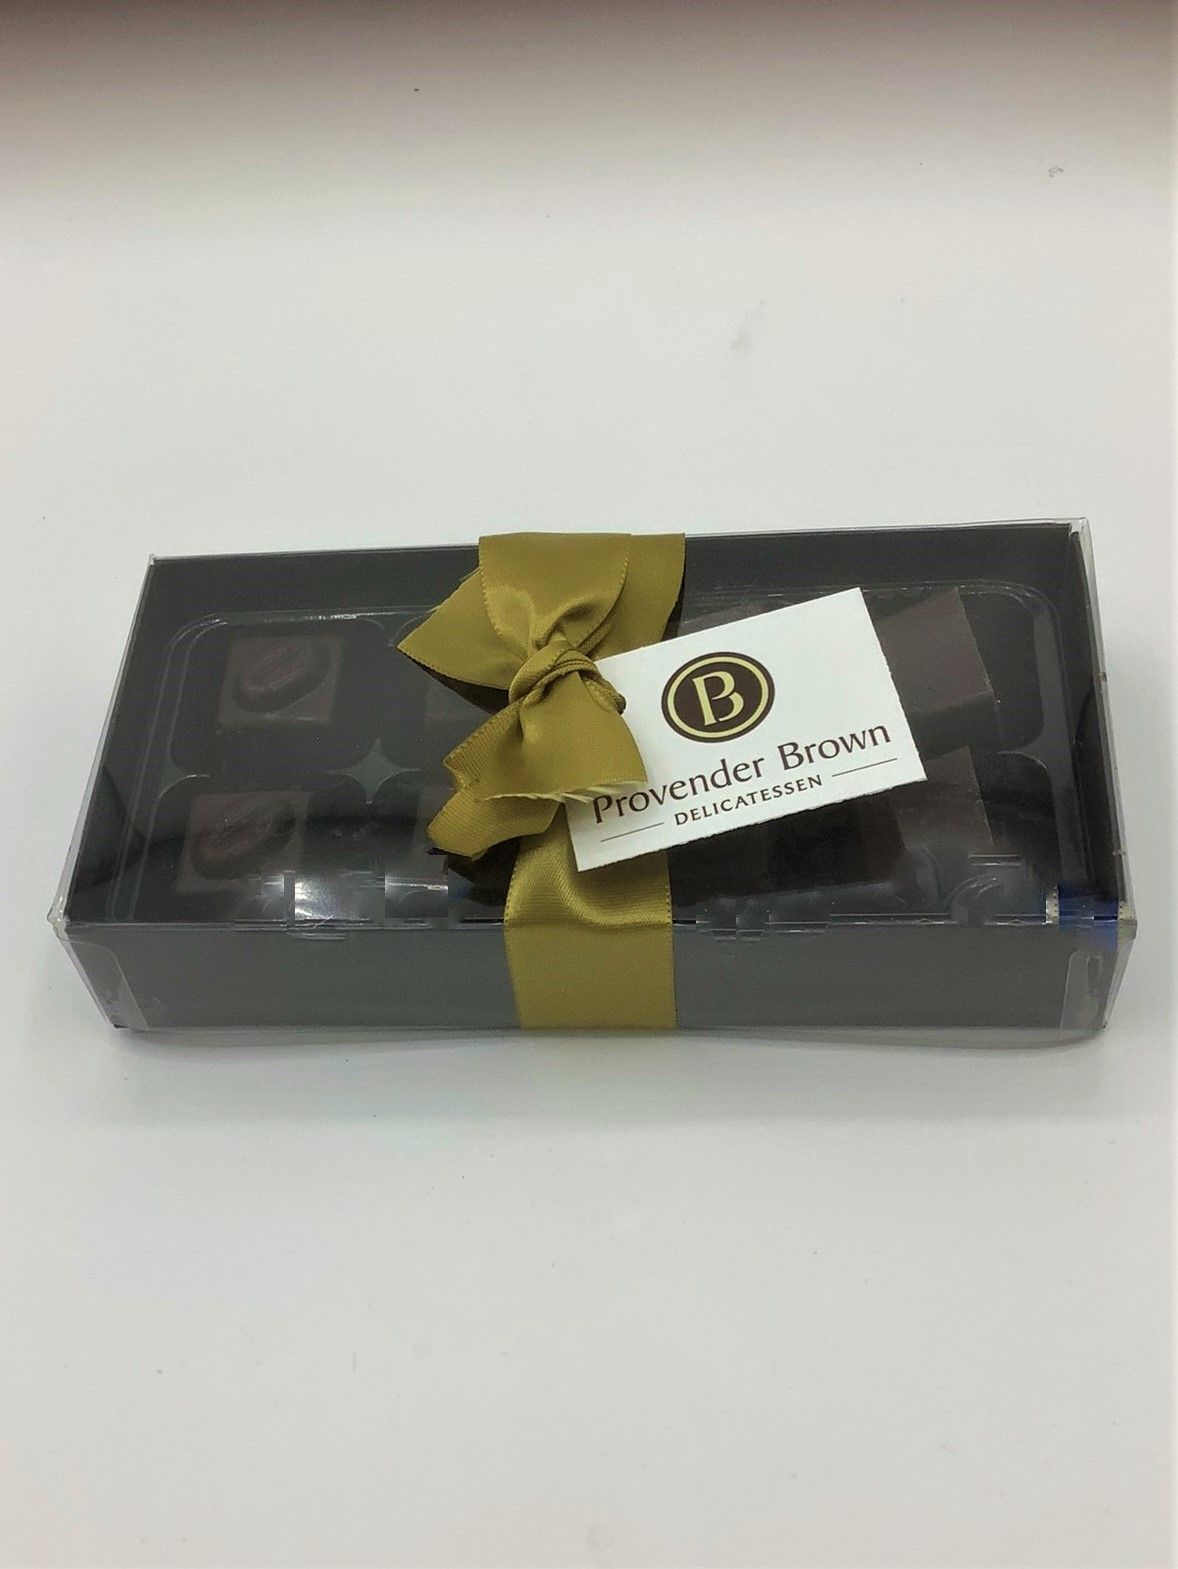 Provender Brown Coffee Creams Gifting Chocolates